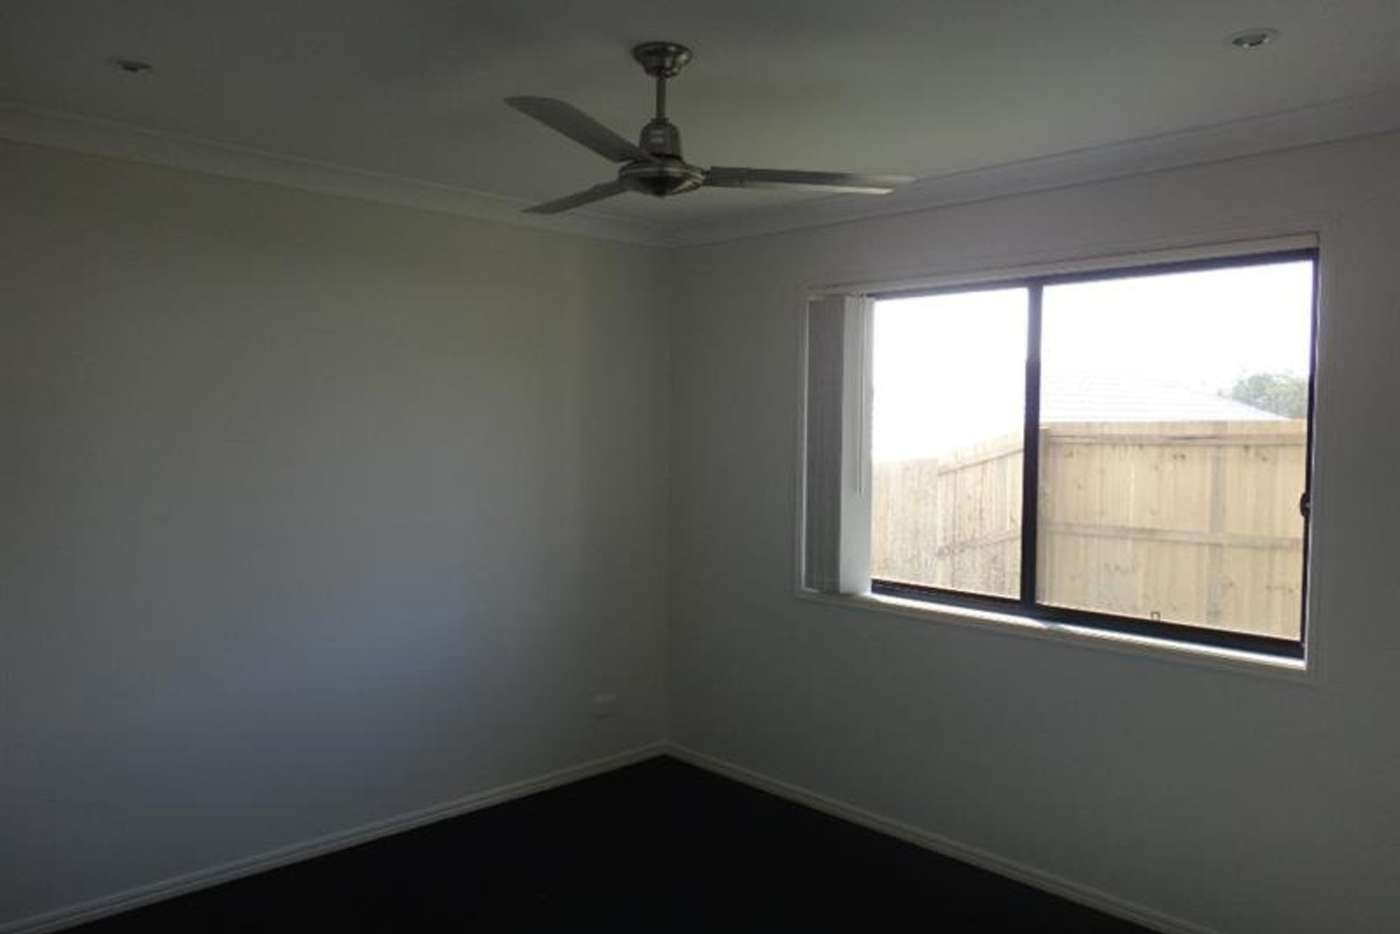 Seventh view of Homely house listing, 16 Jotown Drive, Coomera QLD 4209